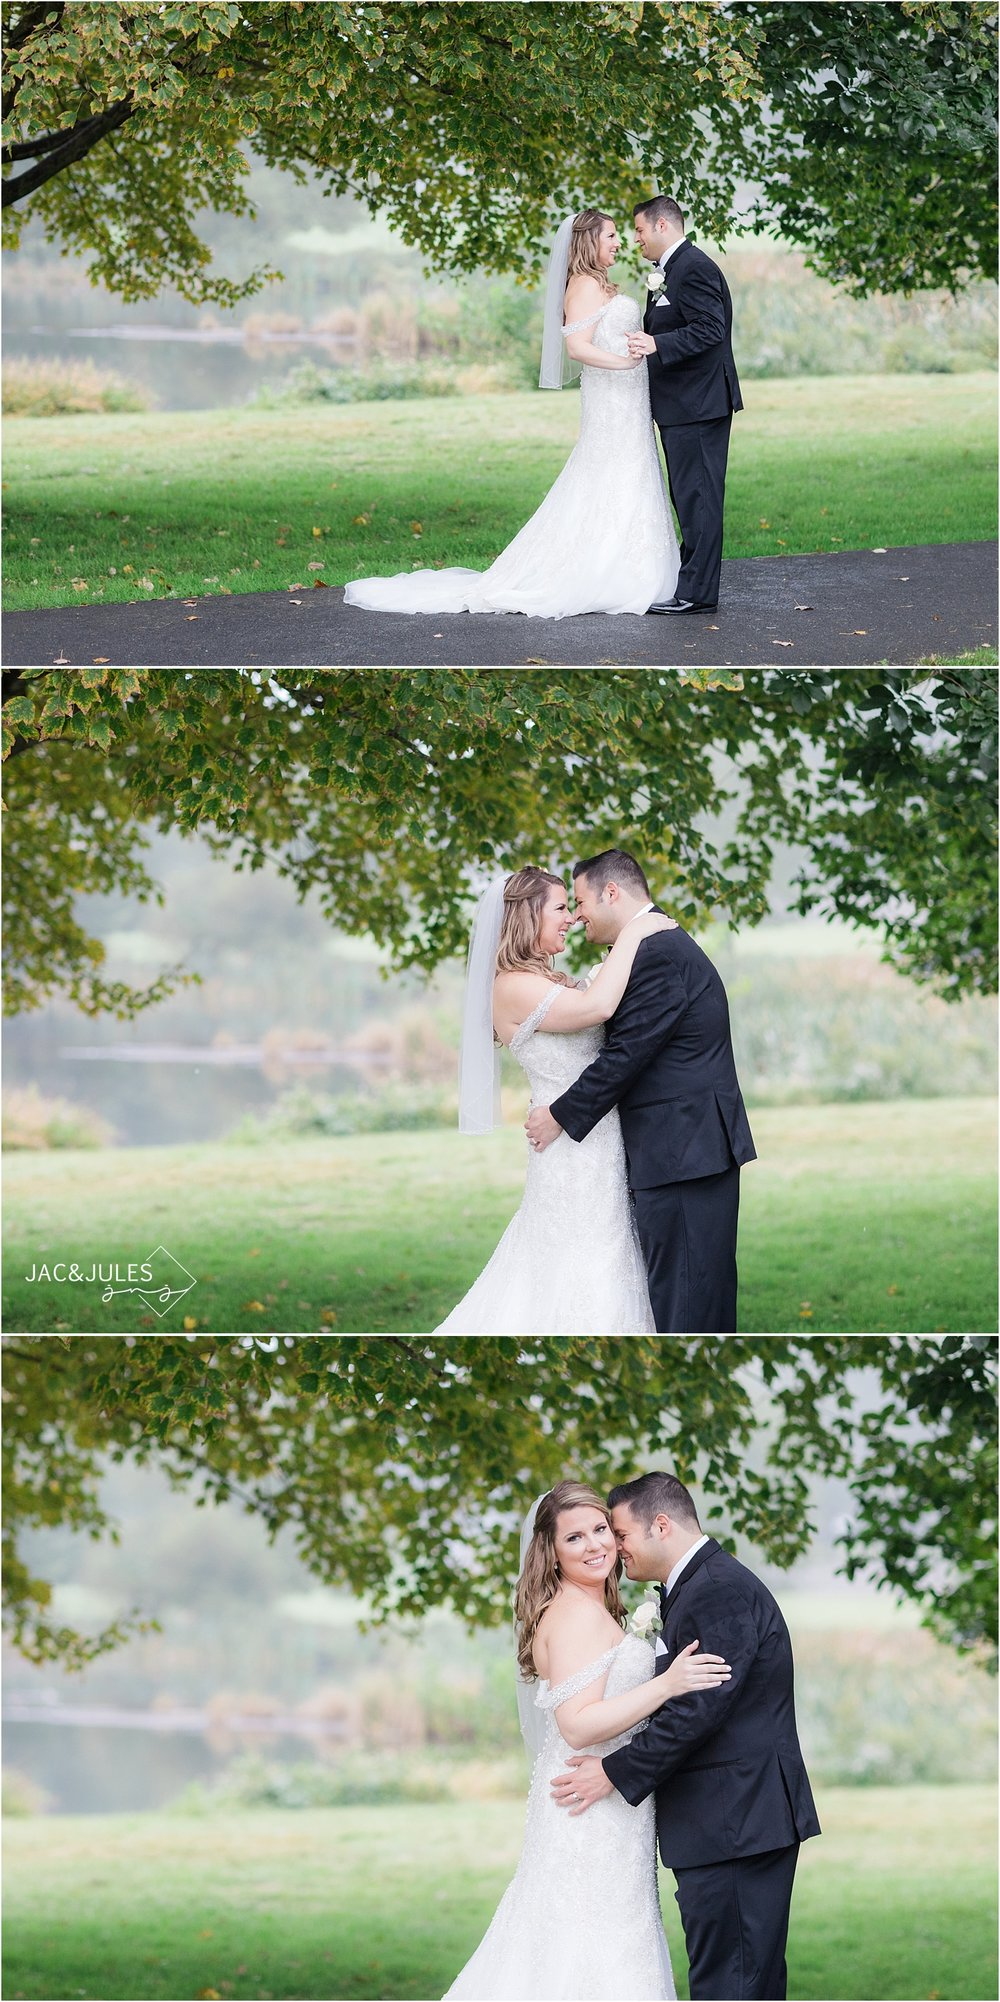 romantic wedding photos at Briant Park